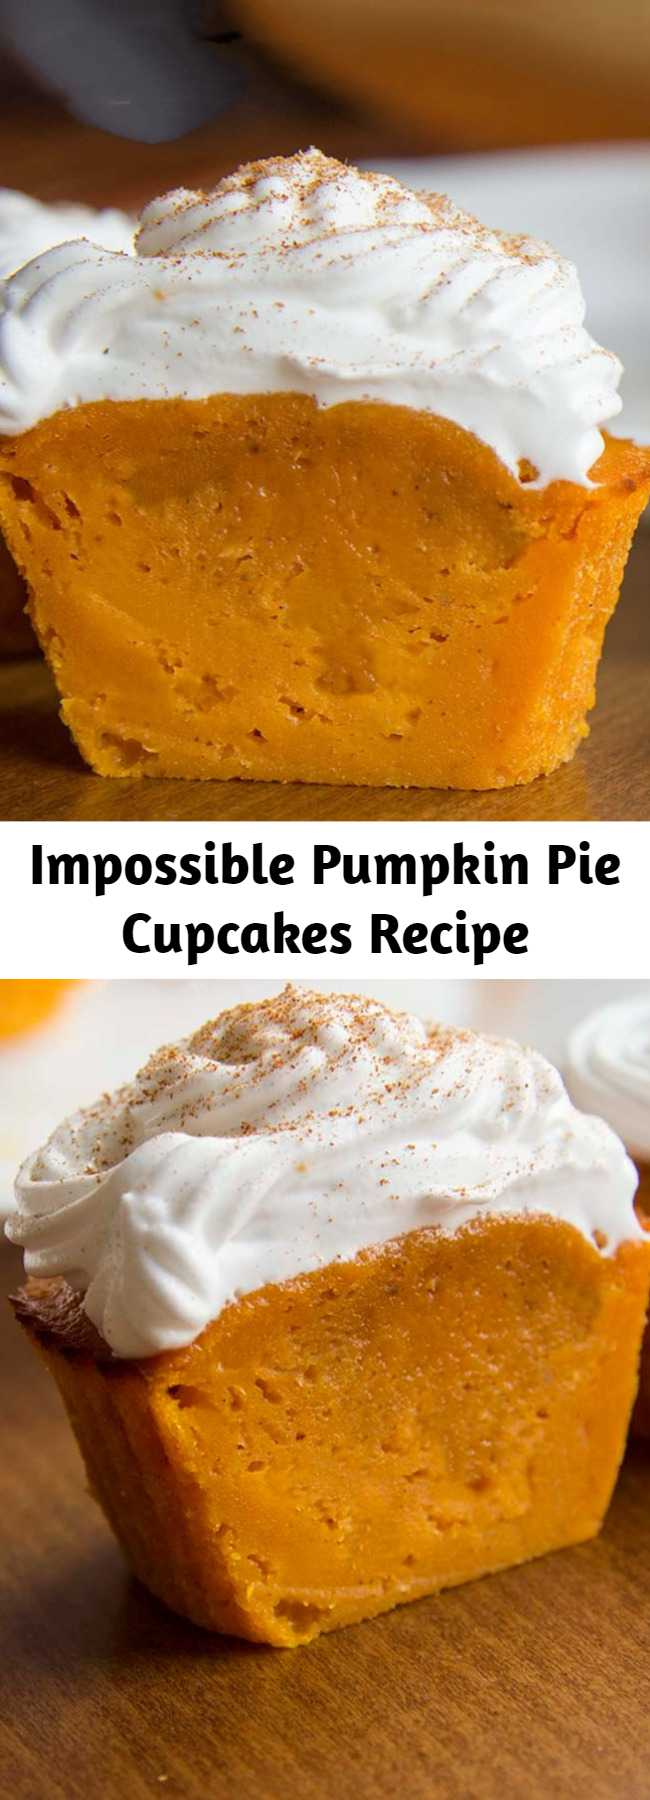 Impossible Pumpkin Pie Cupcakes Recipe - Impossible Perfect Fall treat! De-lic-ious Pumpkin Pie Cupcakes. They taste just like pumpkin pie filling, but are sturdy enough to eat with your hands. You'll love these because they're not overly sweet, and they're pumpkin-y without being overpowering, plus the batter is crazy easy to make too. #recipes #pumpkin #cupcakes